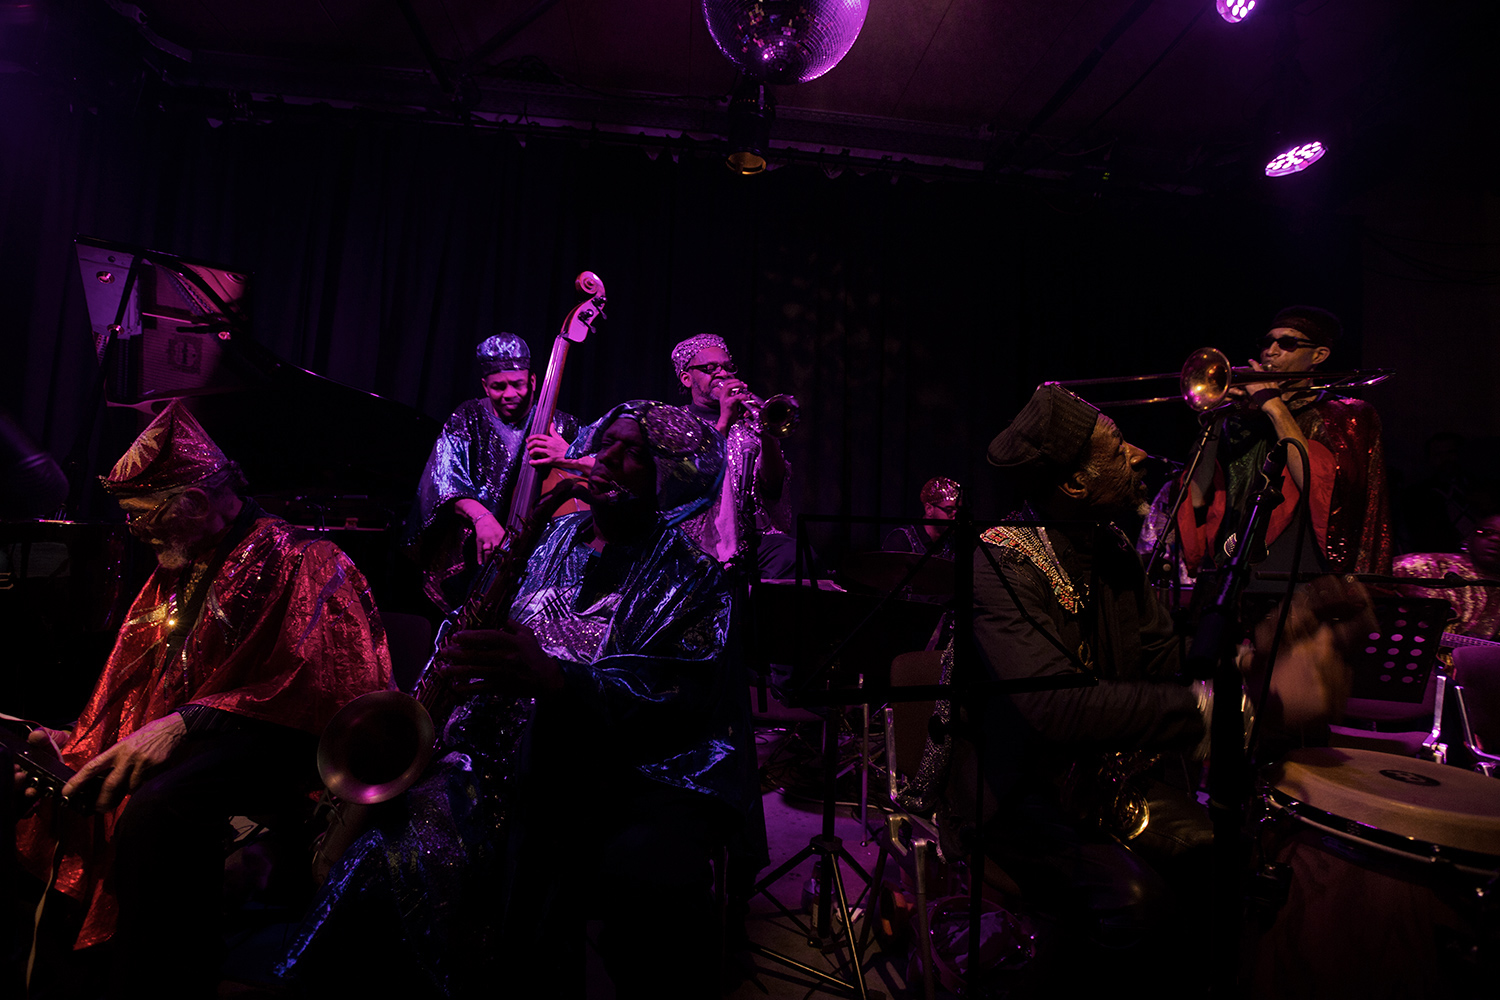 Sun Ra Arkestra directed by Marshall Allen by Laurent Orseau - Concert - Les Ateliers Claus - Brussels, Belgium #3